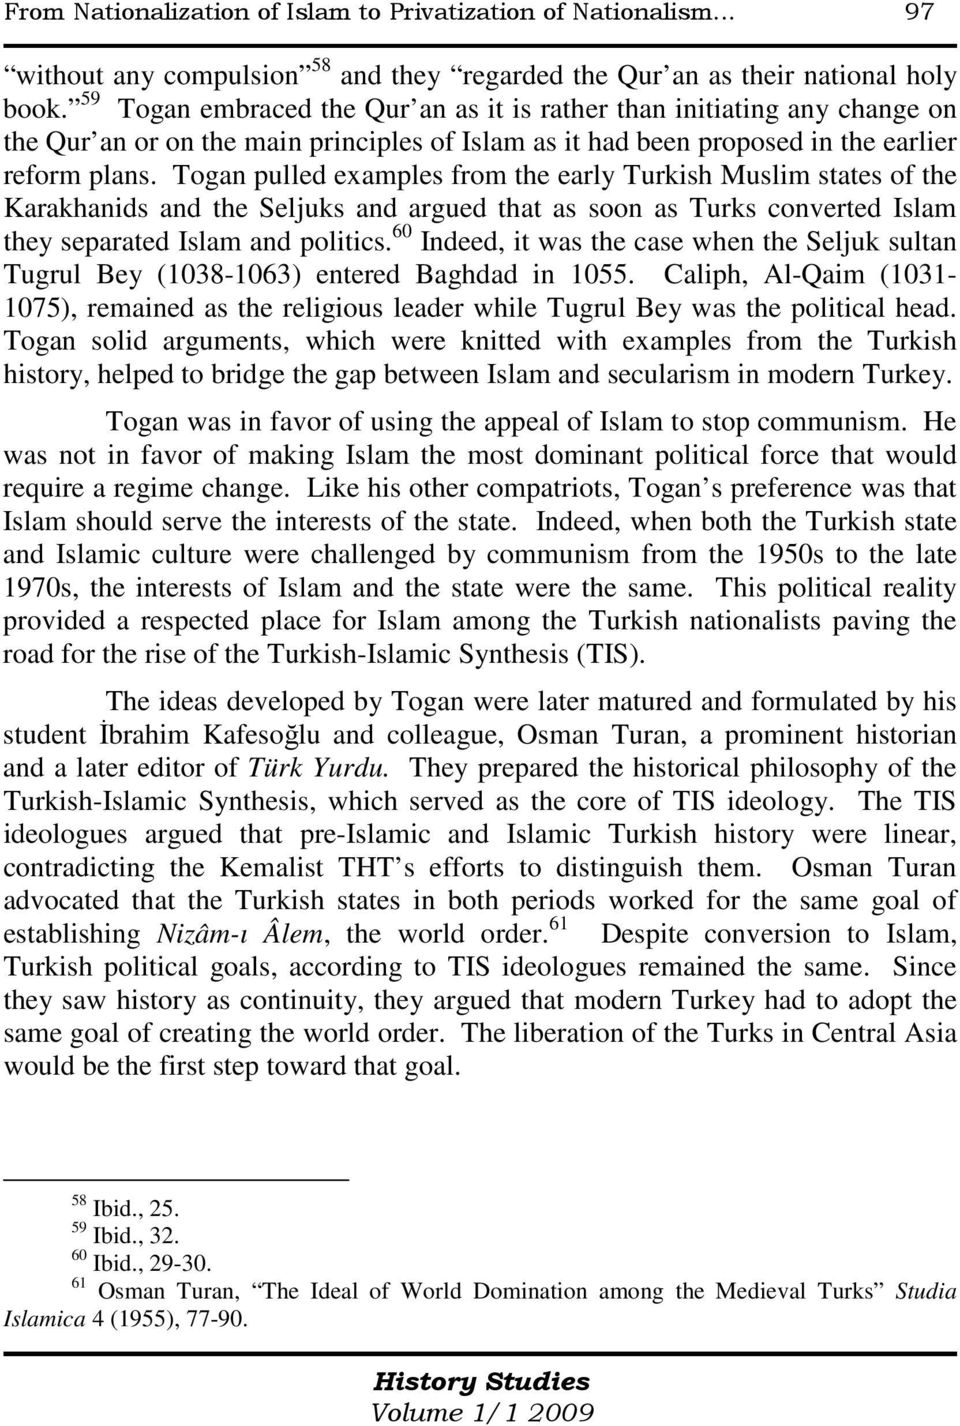 Togan pulled examples from the early Turkish Muslim states of the Karakhanids and the Seljuks and argued that as soon as Turks converted Islam they separated Islam and politics.